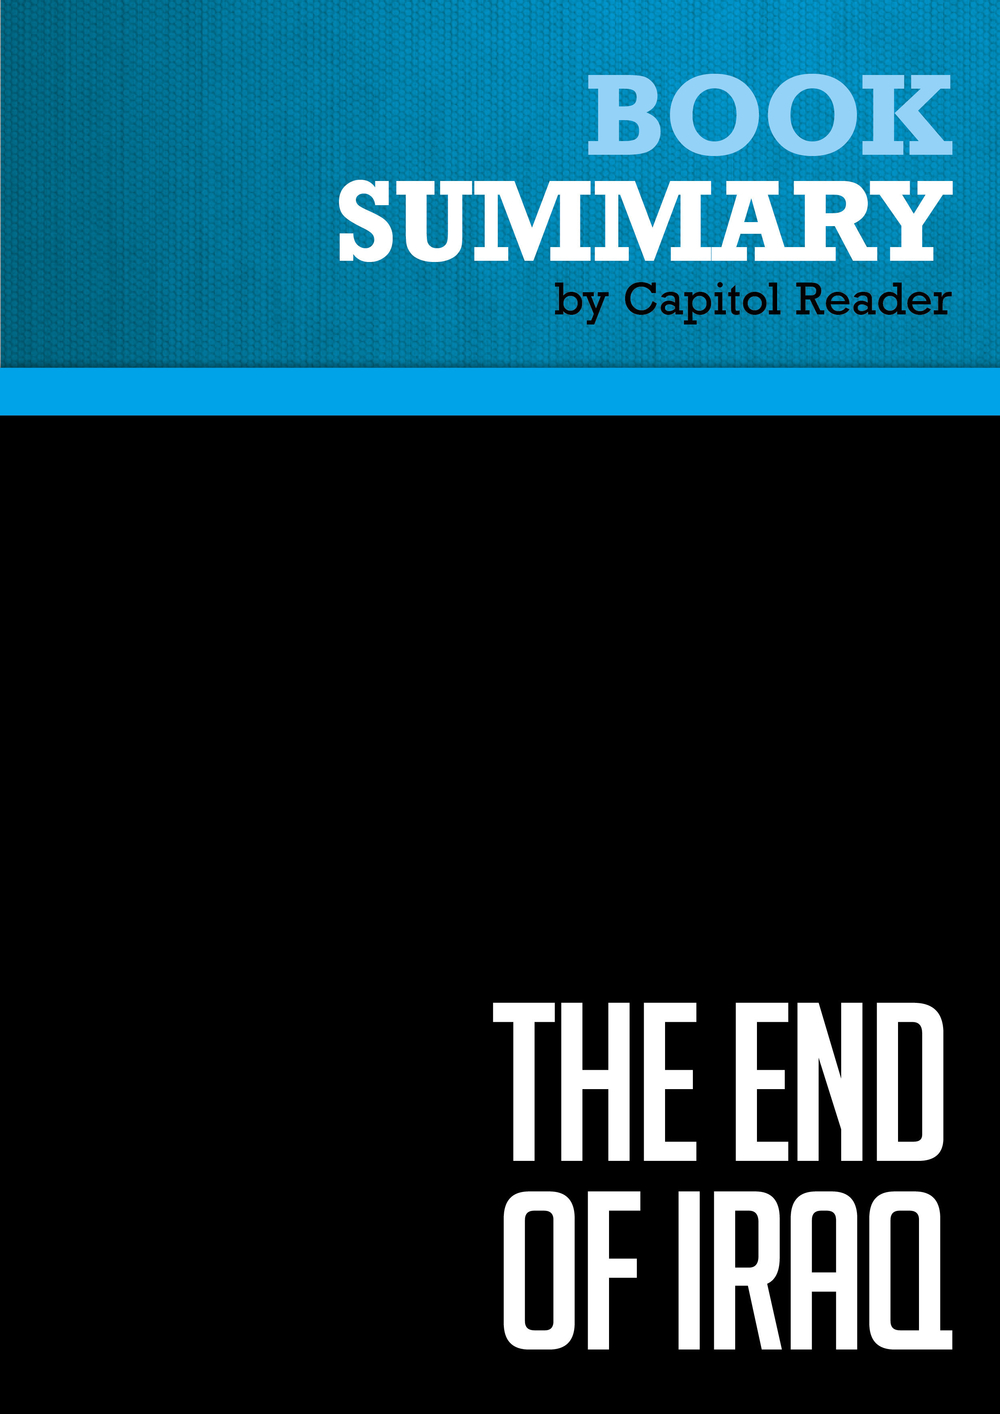 Summary of The End of Iraq: How American Incompetence Created a War Without End - Peter W. Galbraith